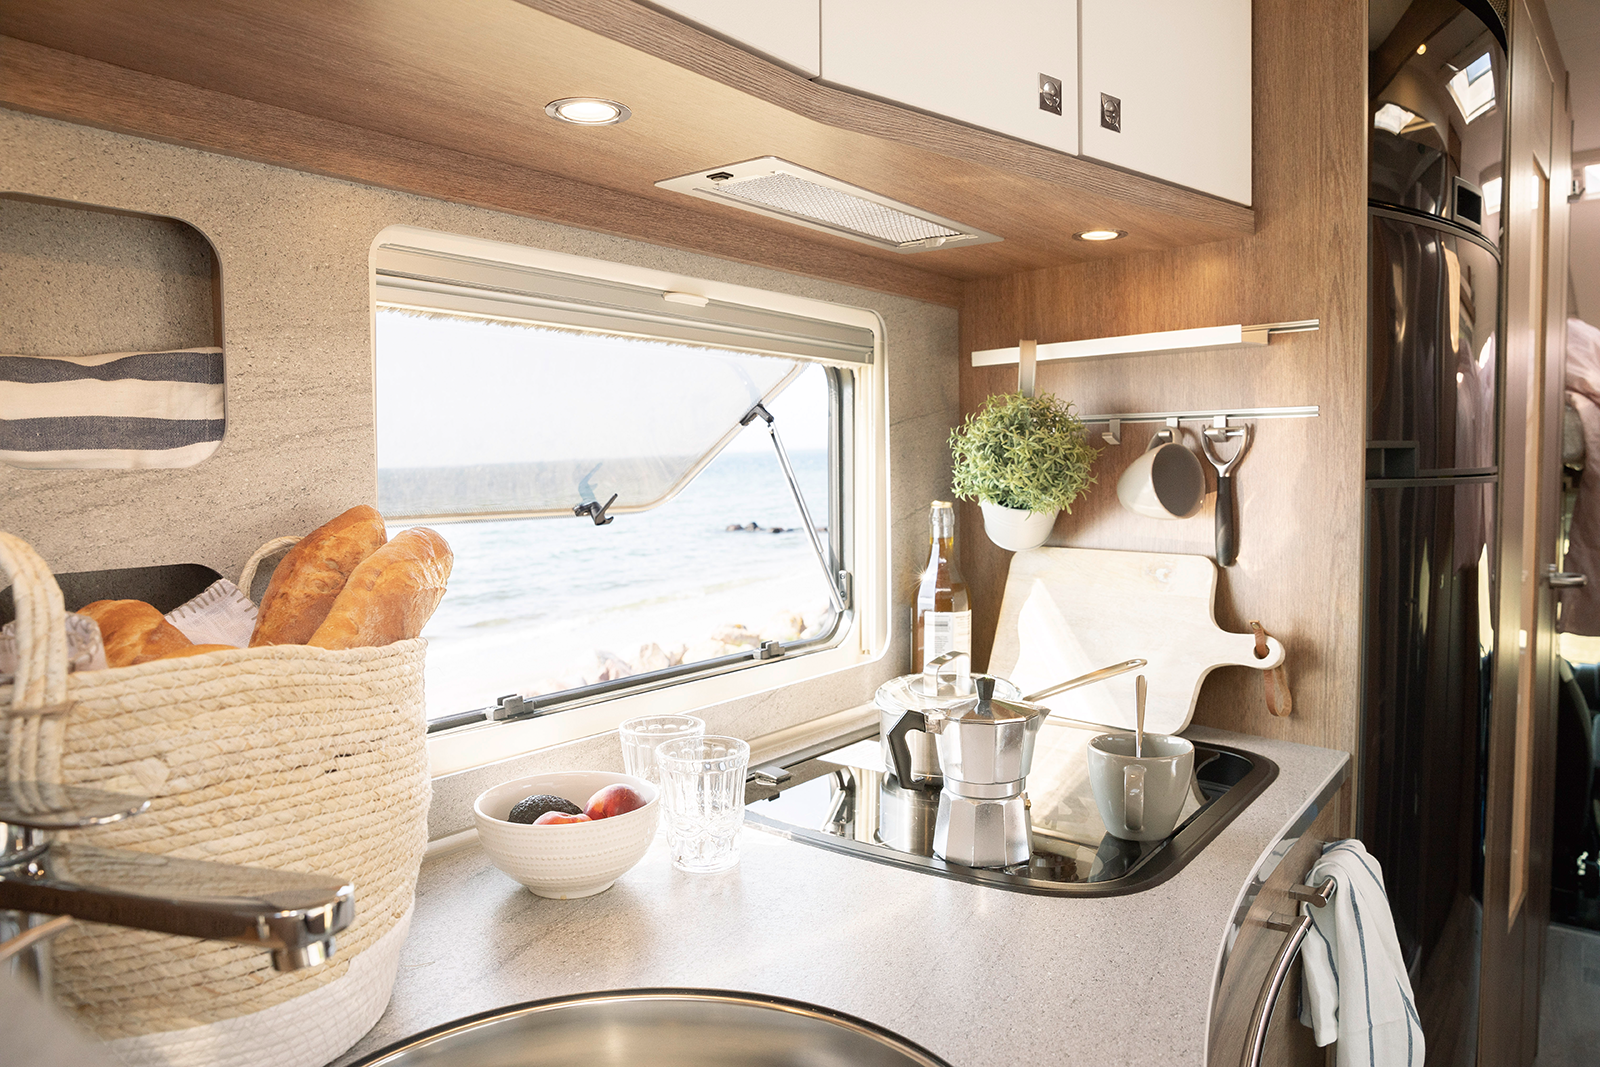 Pure holiday feeling: even when cooking you can enjoy a unique view thanks to the large panoramic windows